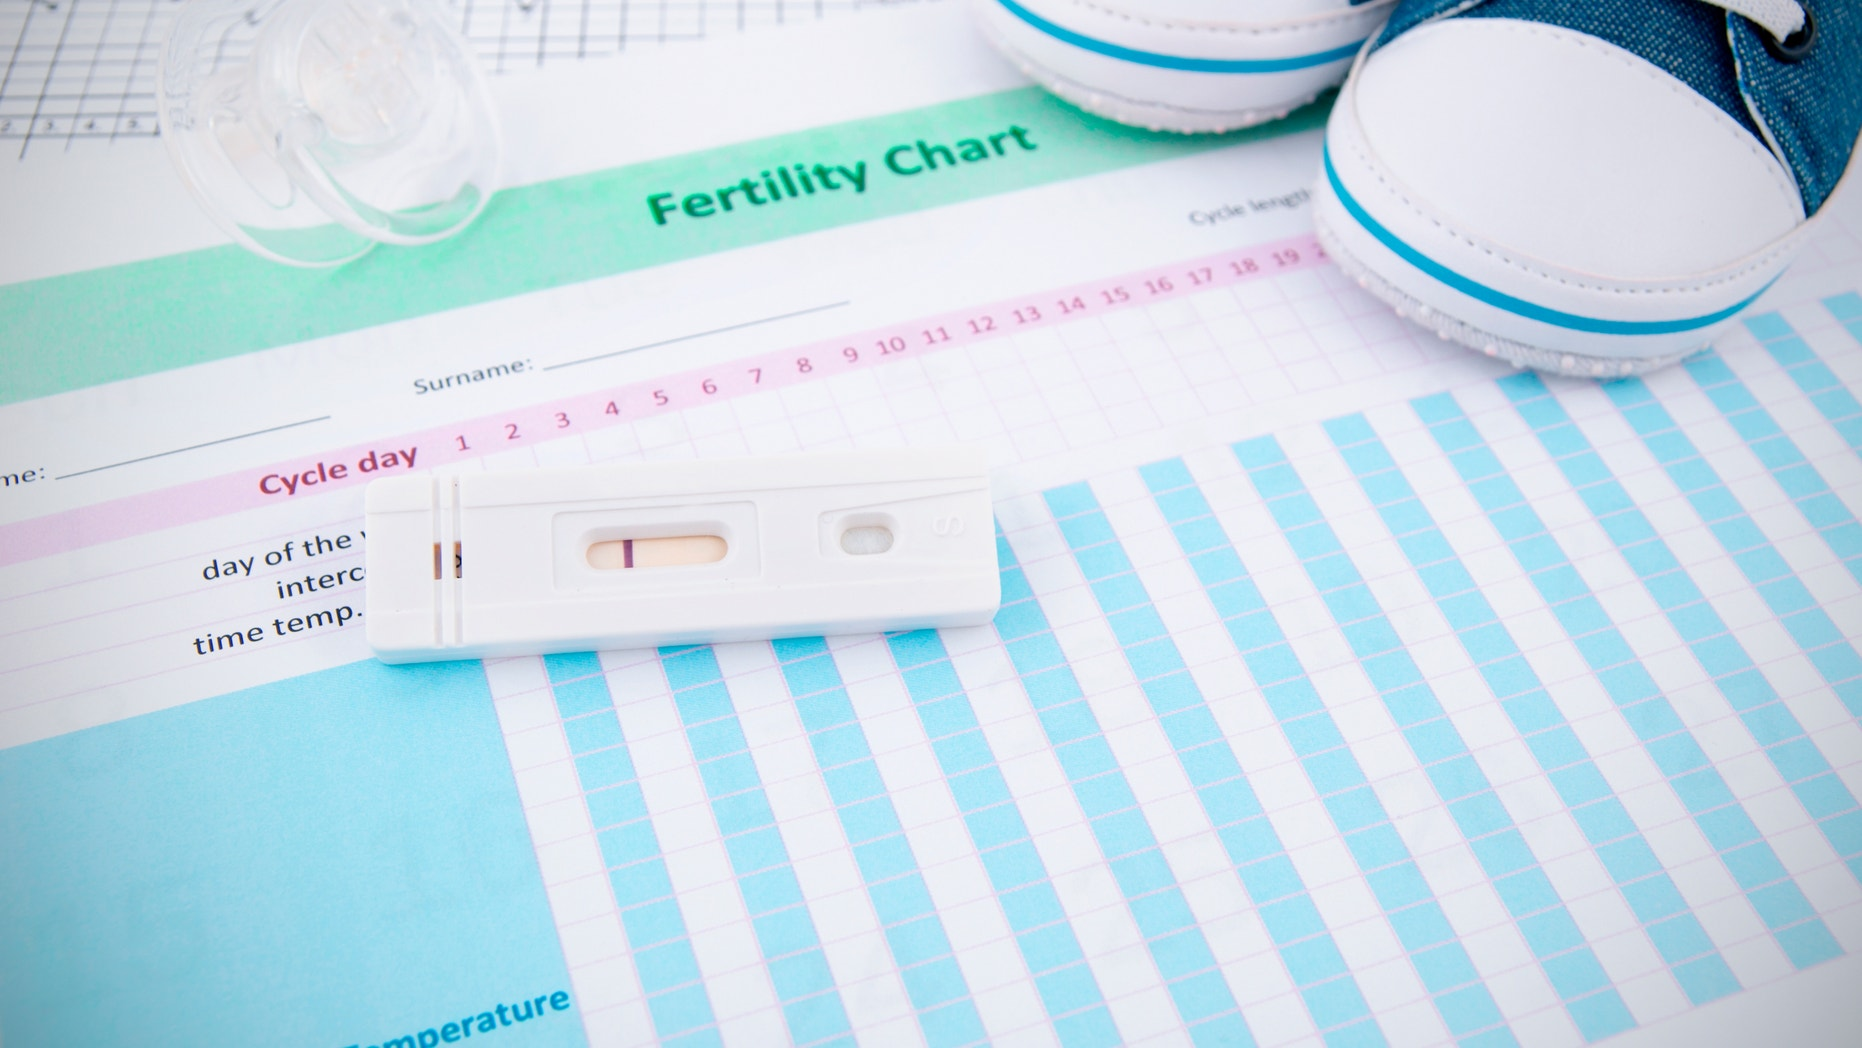 Pregnancy test on fertility chart